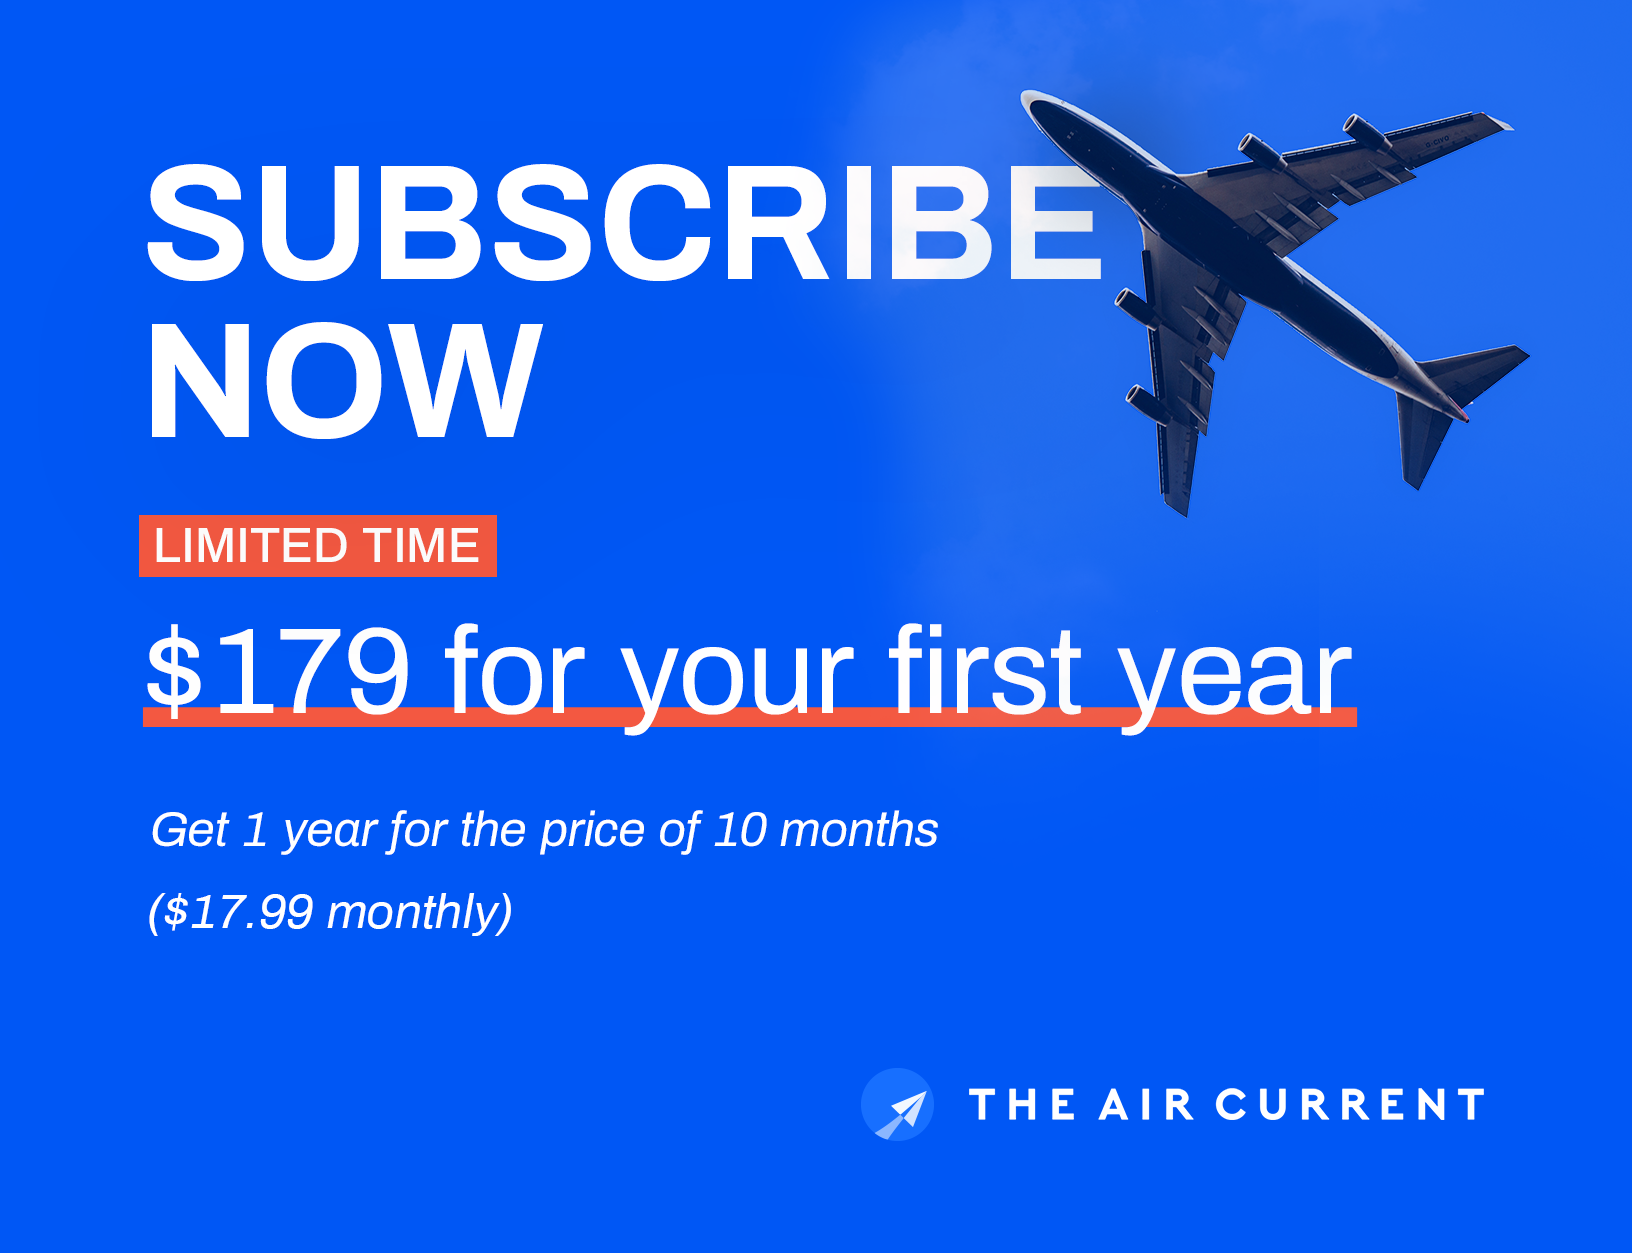 Subscribe to The Air Current